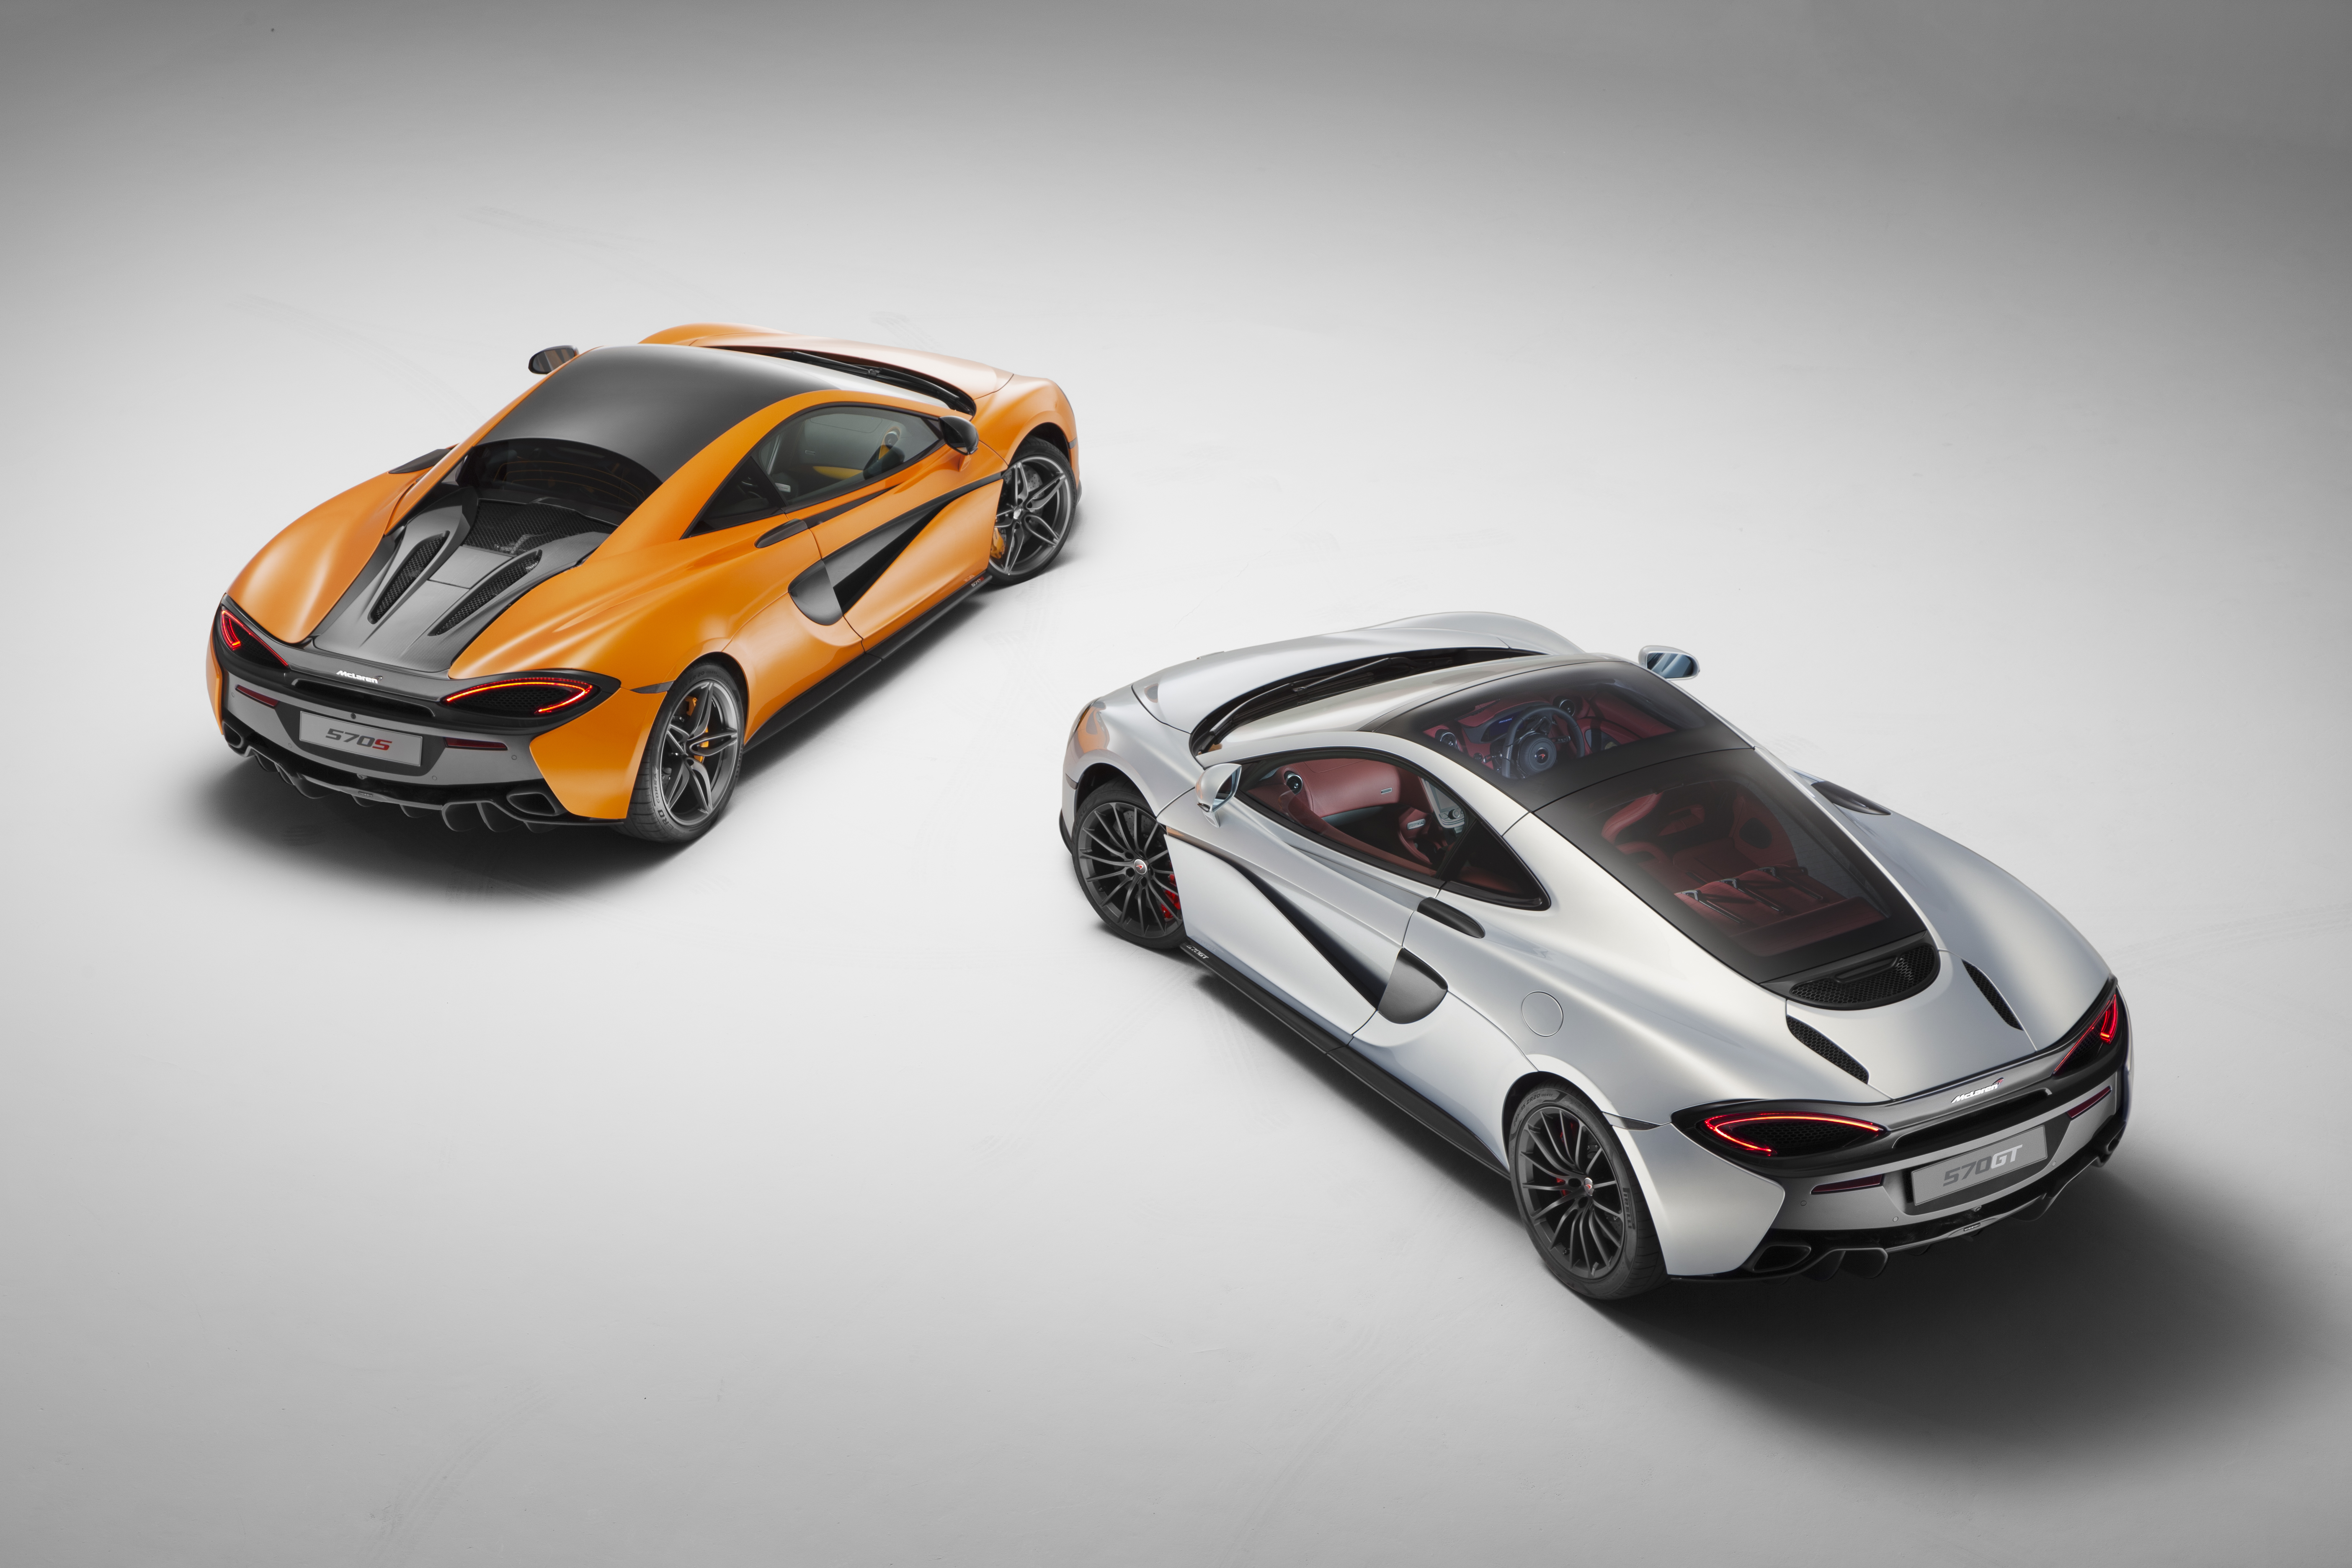 McLaren 570 and 570GT make up the new Sports Series models